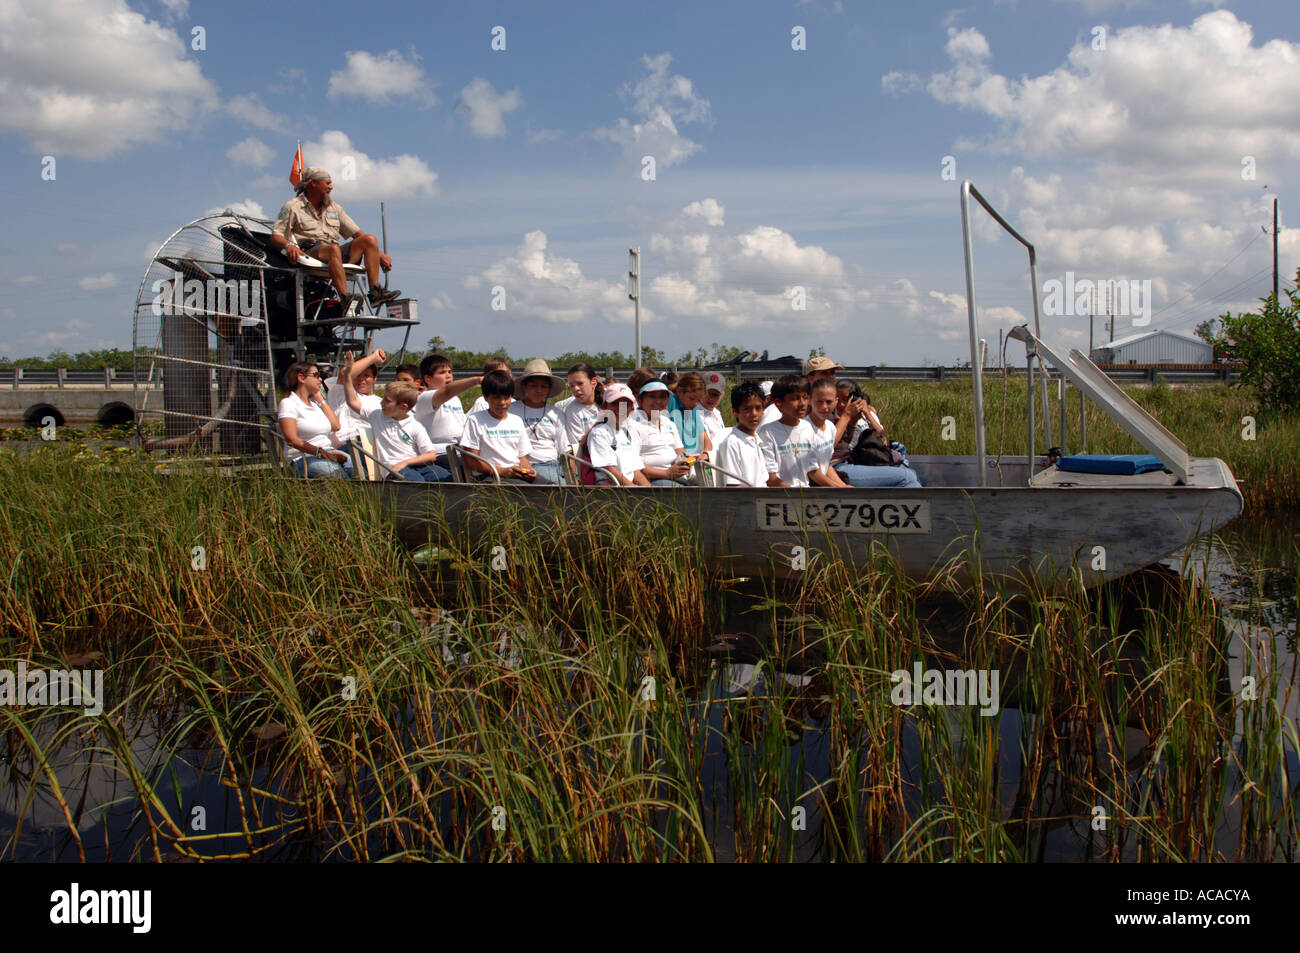 Airboat Ride Gator Park Miami In The Everglades National Park